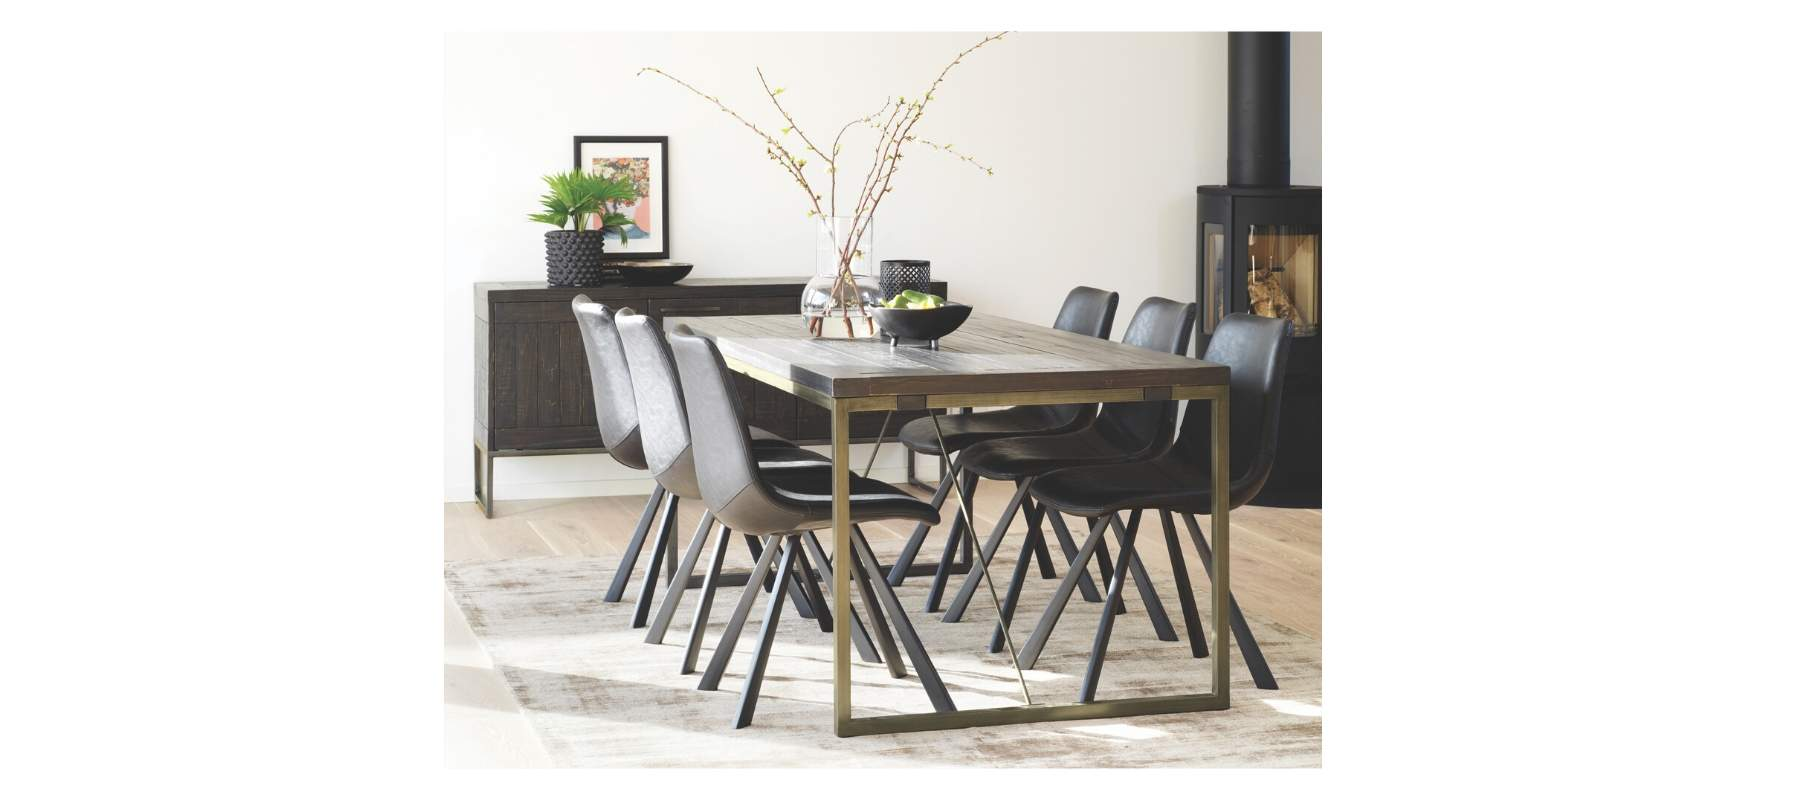 Tavistock Industrial Dining Table with bronze legs